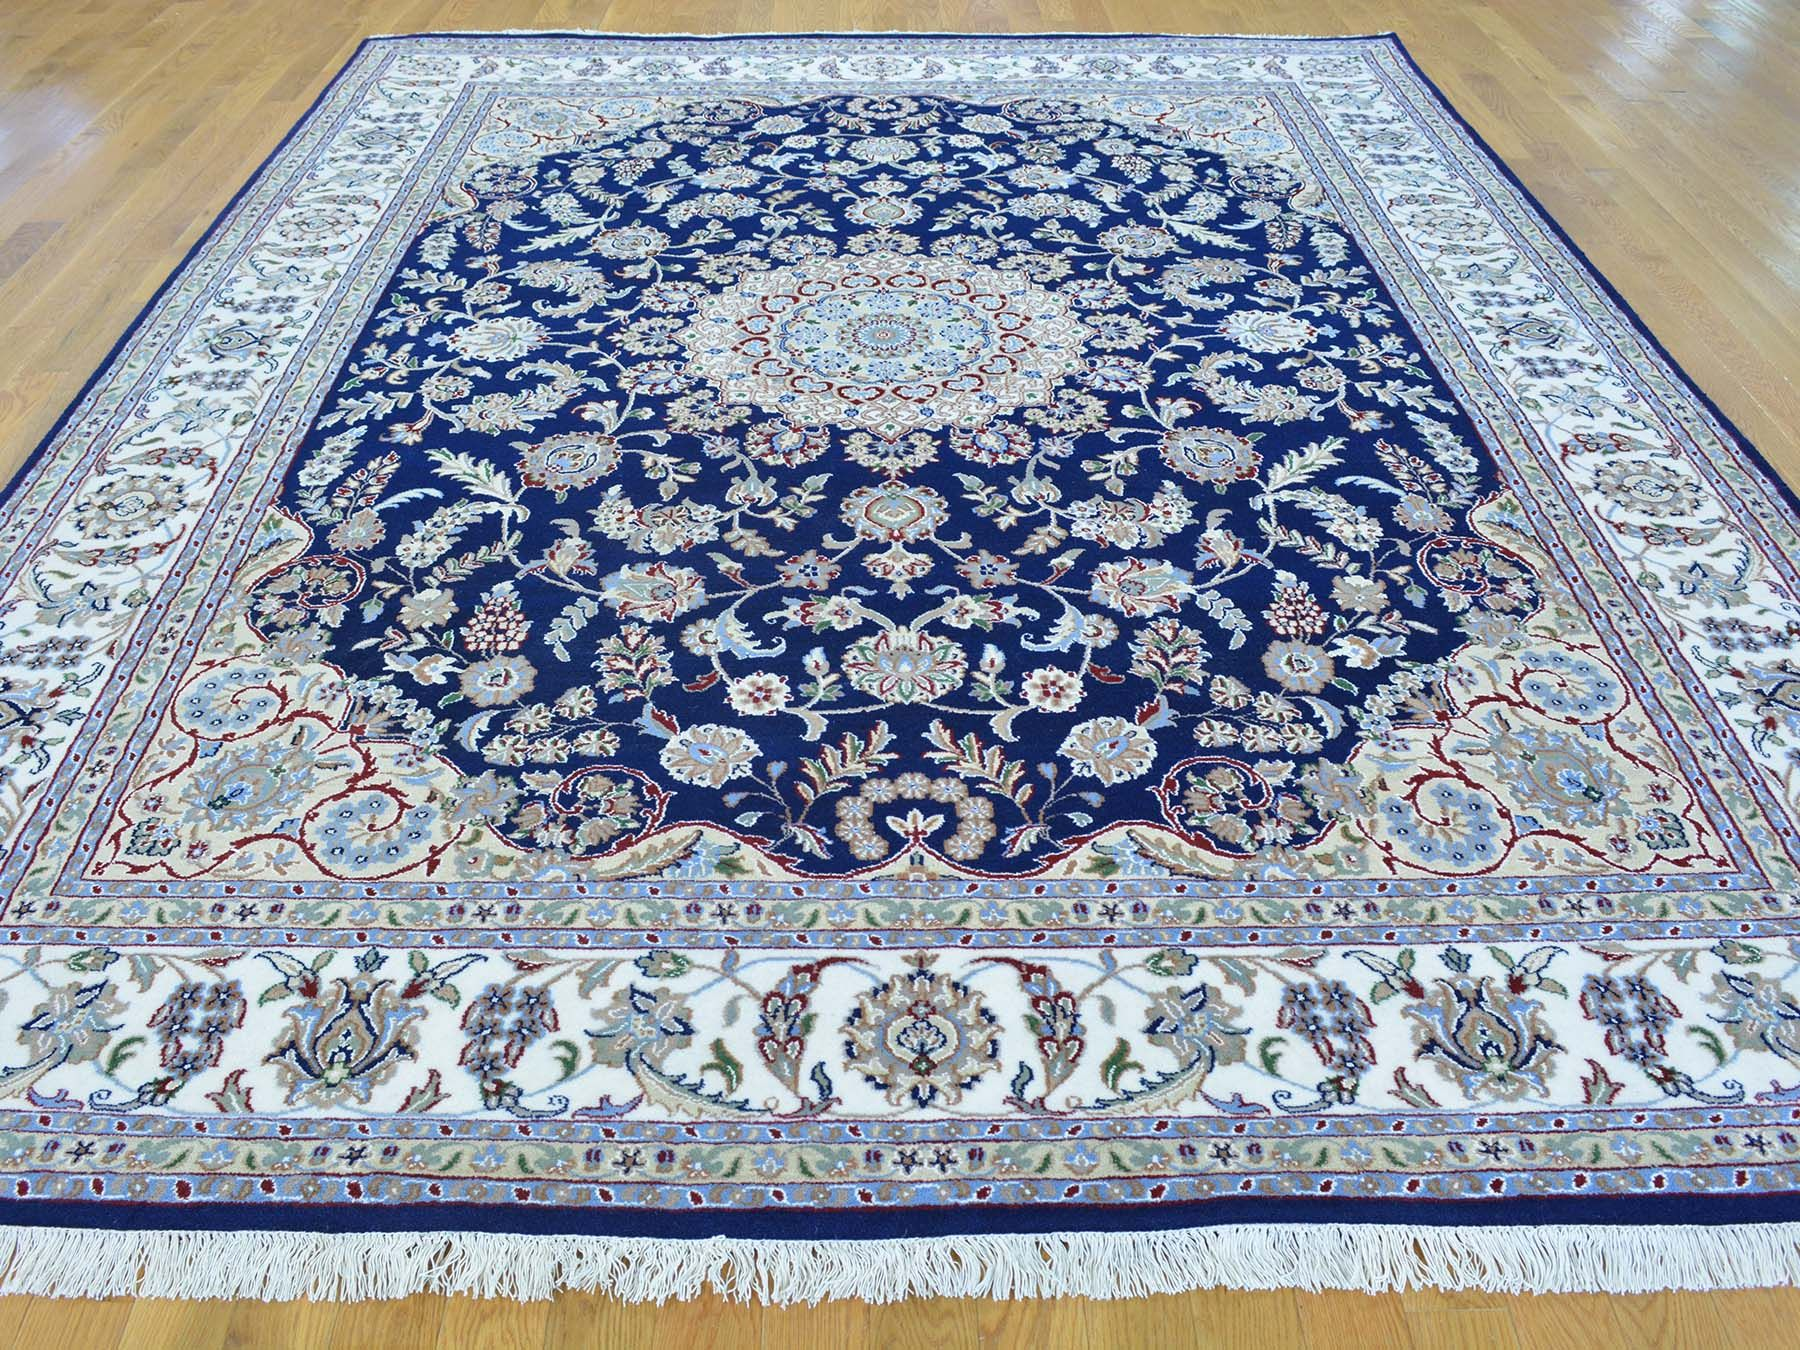 8 X 10 Navy Blue Wool And Silk Nain Hand Knotted Oriental Rug Sh24725 Product 8 X 10 Navy Blue Wool Oriental Rug Designs Blue Oriental Rug Blue Persian Rug